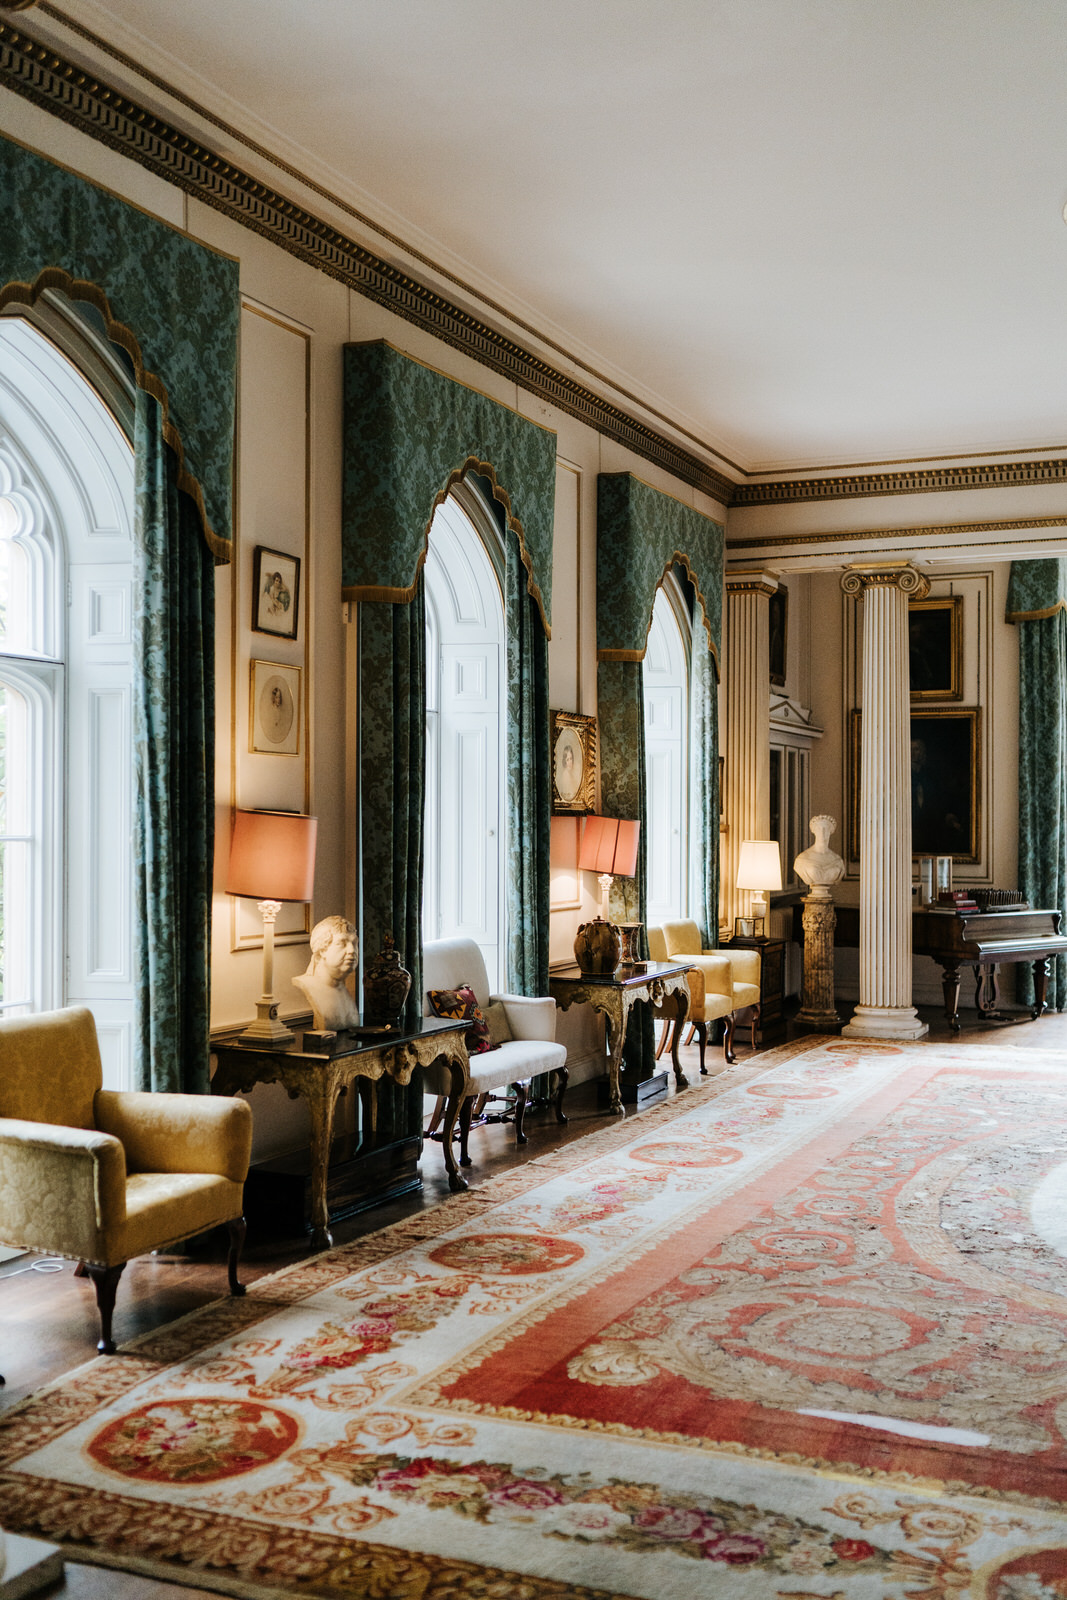 Ambiance-setting photograph of the drinks reception room at Hawarden Castle